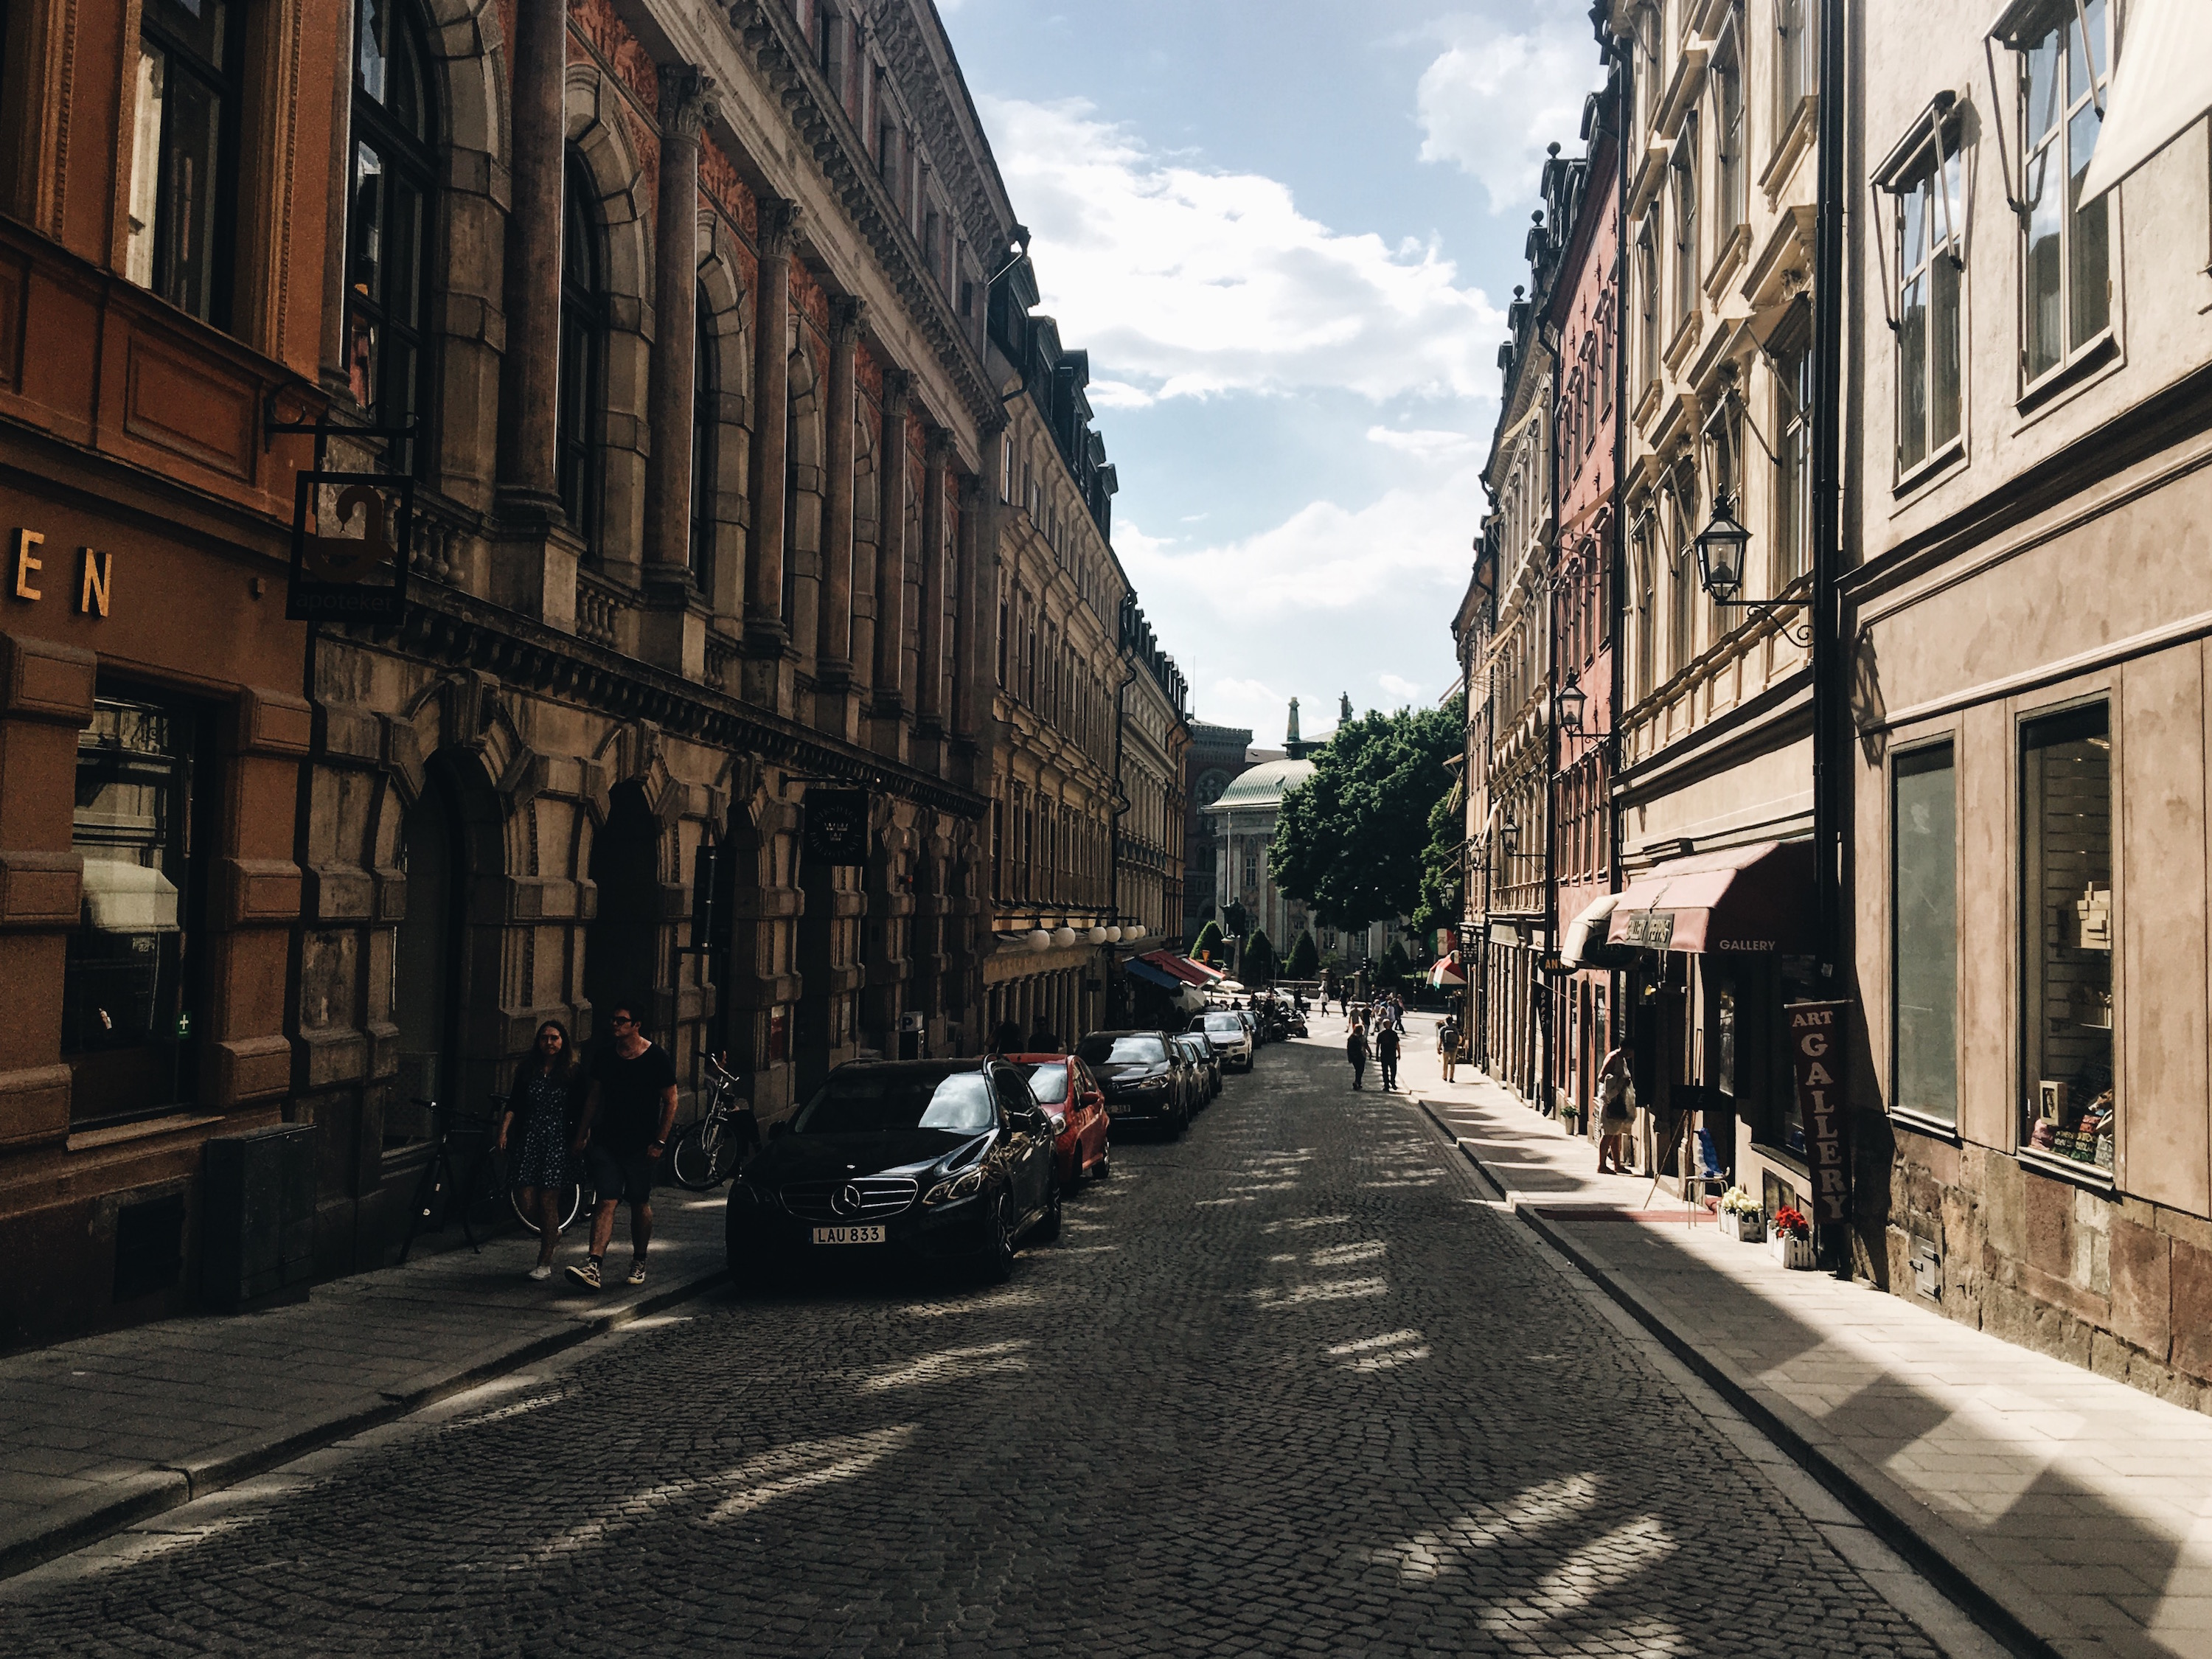 travel tips stockholm stockholm guide fun facts travel diary sweden what to see where to eat tips reise tagebuch tipps hinweise wo essen was sehen